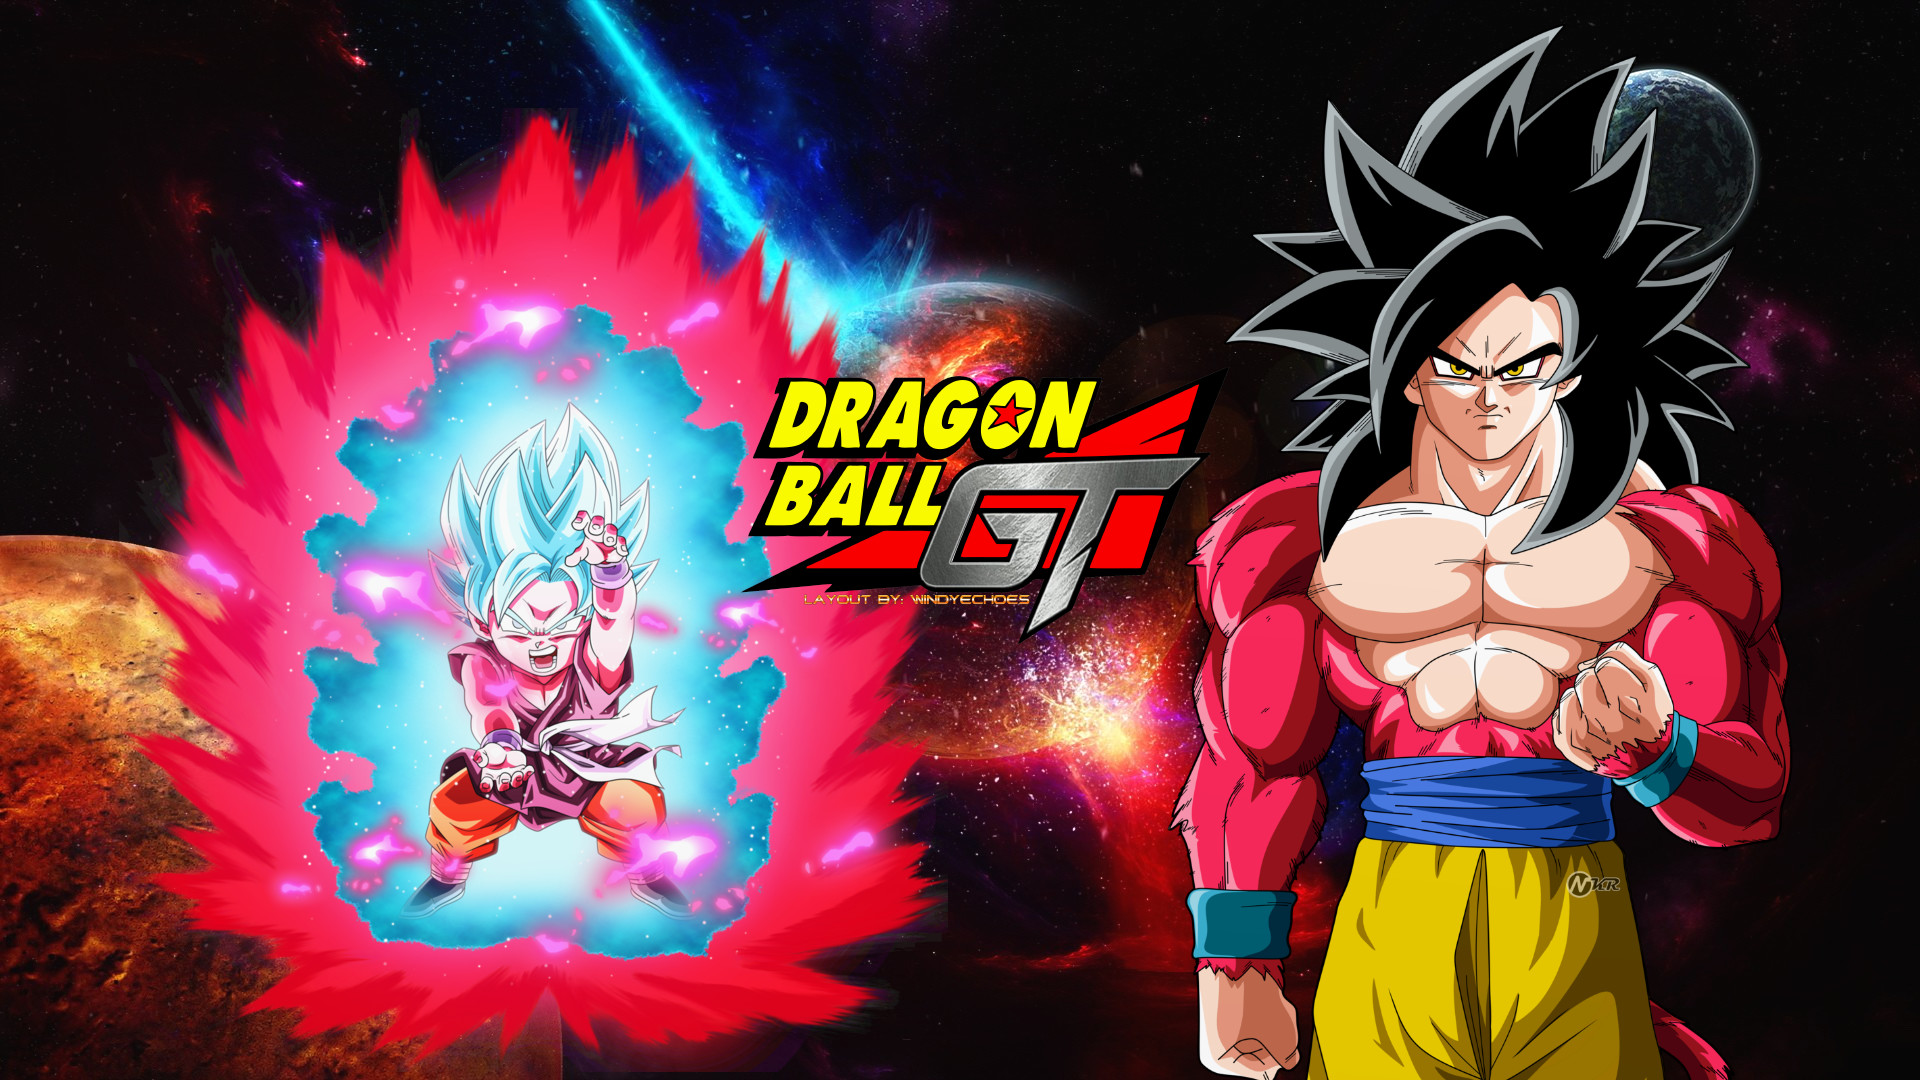 … New Dragon Ball GT – Super Version Reboot Fan Made by WindyEchoes